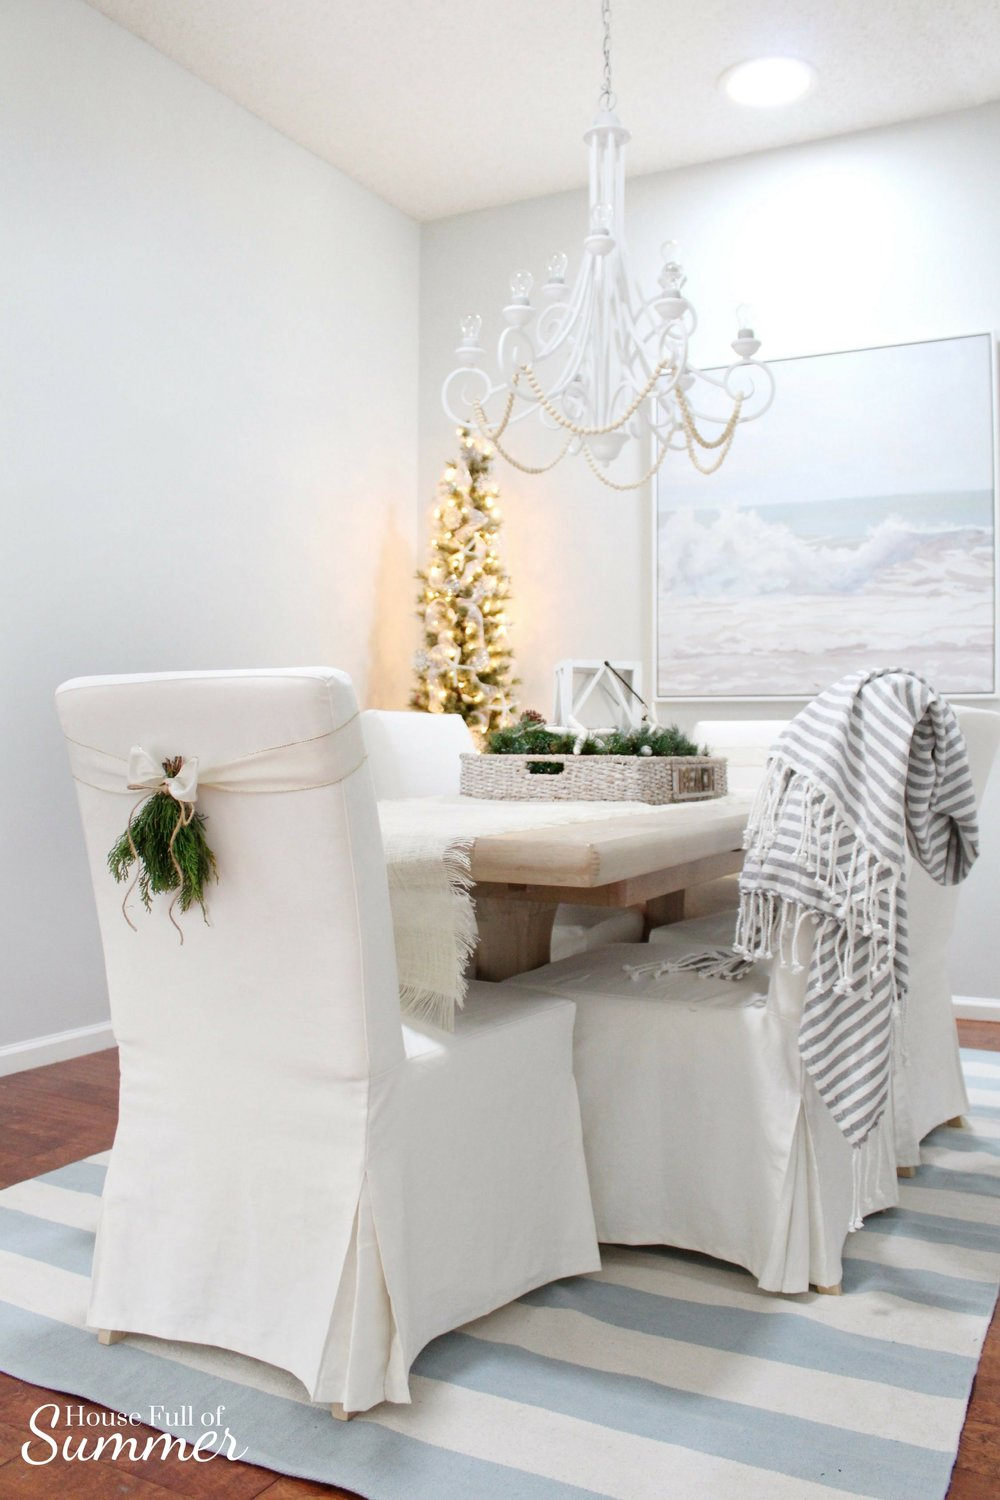 Christmas Home Tour | House Full of Summer blog hop - Cheerful Christmas Home Tourcoastal christmas neutral christmas decor, holiday home tour, florida christmas, white dining room, chair swag, christmas centerpiece, white chandelier, pencil tree